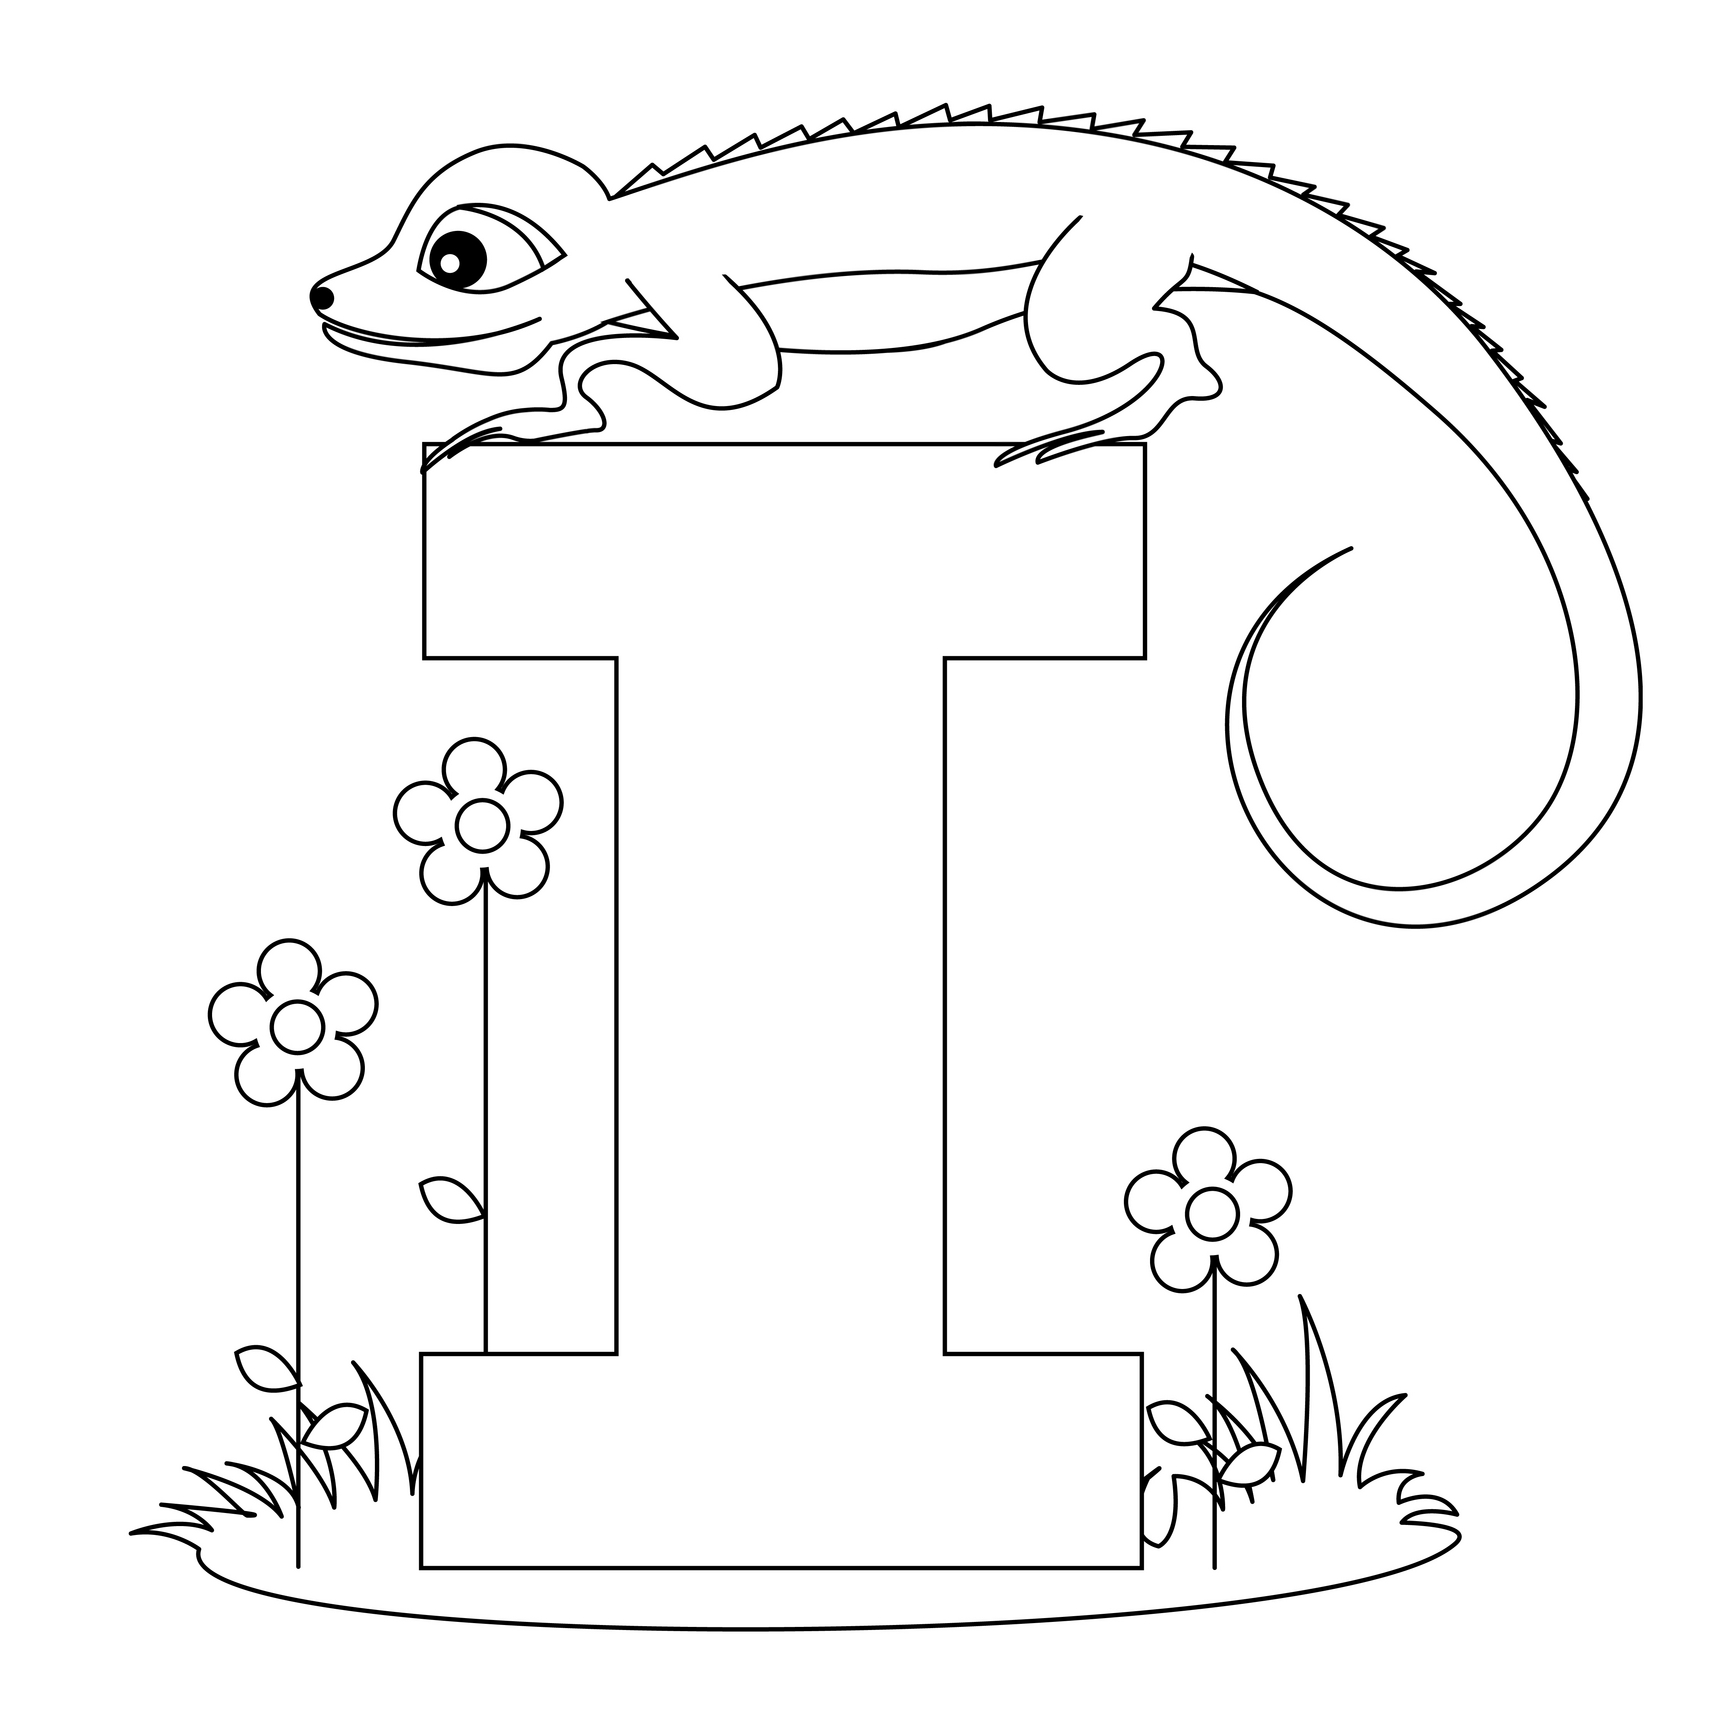 Printable alphabet worksheets letter i for iguana for for Animal alphabet coloring pages free